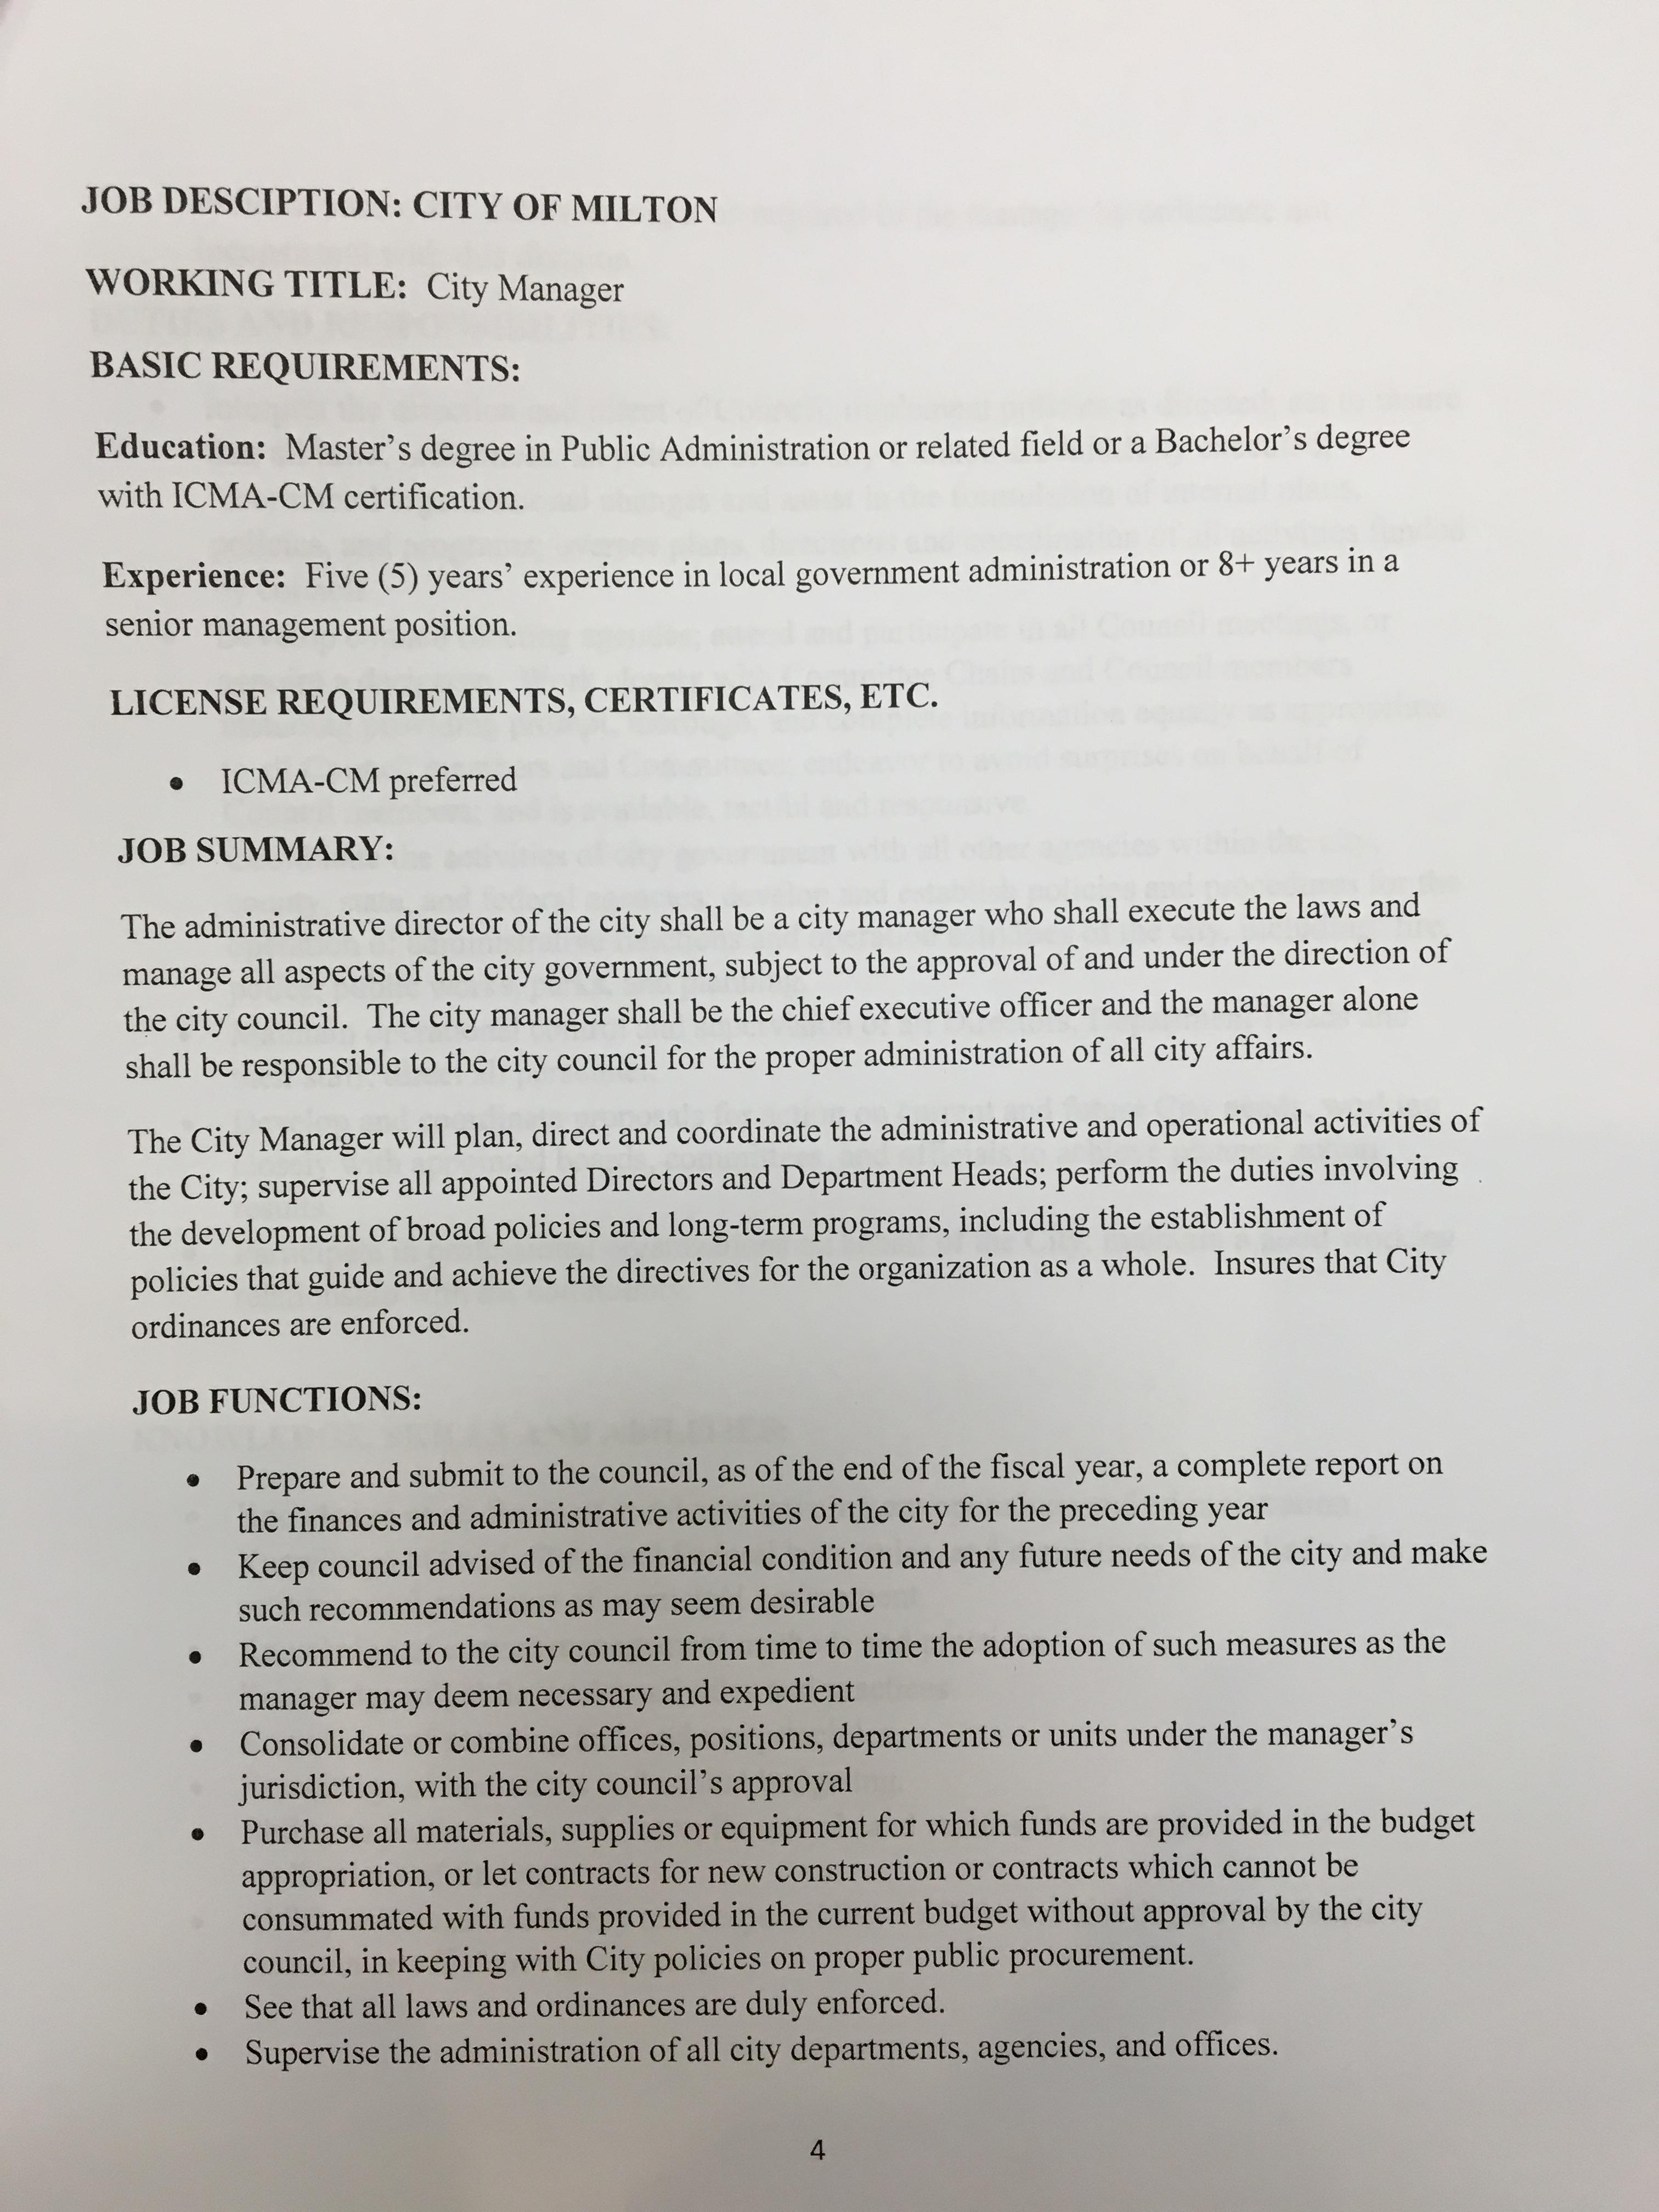 Recruitment and Retention City Manager Position Memorandum - Page 4